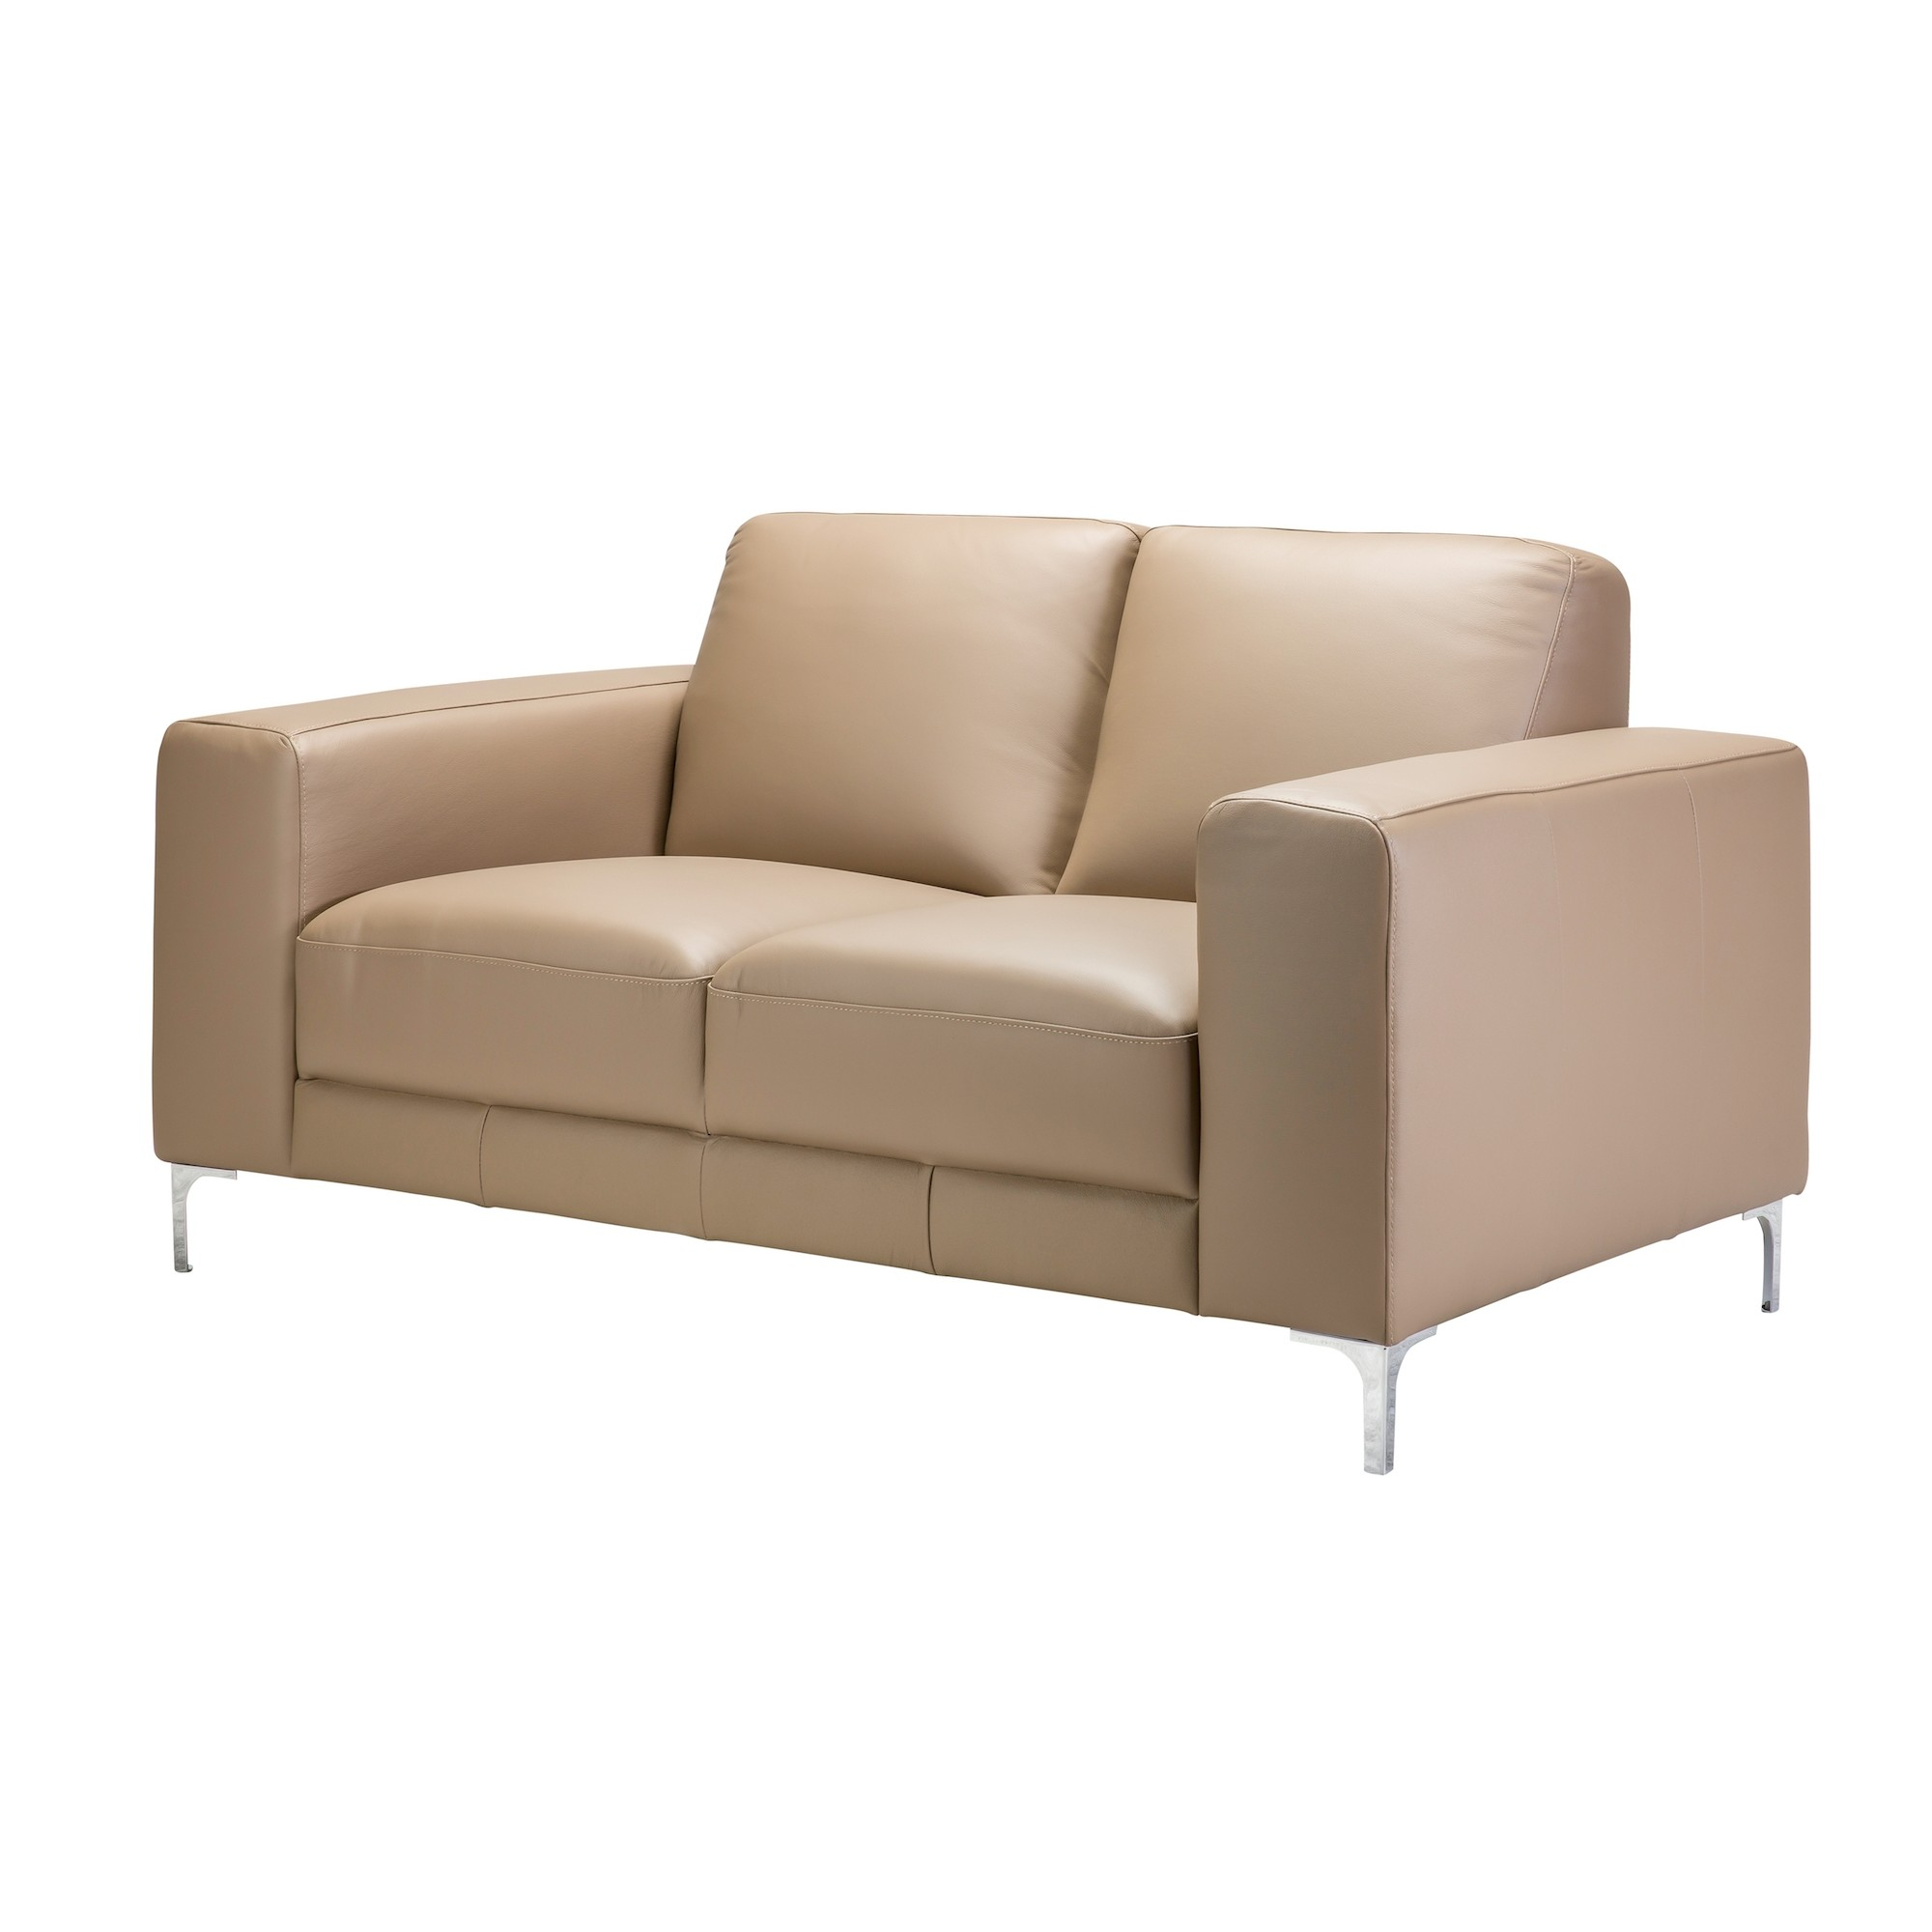 Kiara 2 Seater Love Seat Leather Inside Kiara Sofa Chairs (Image 6 of 20)